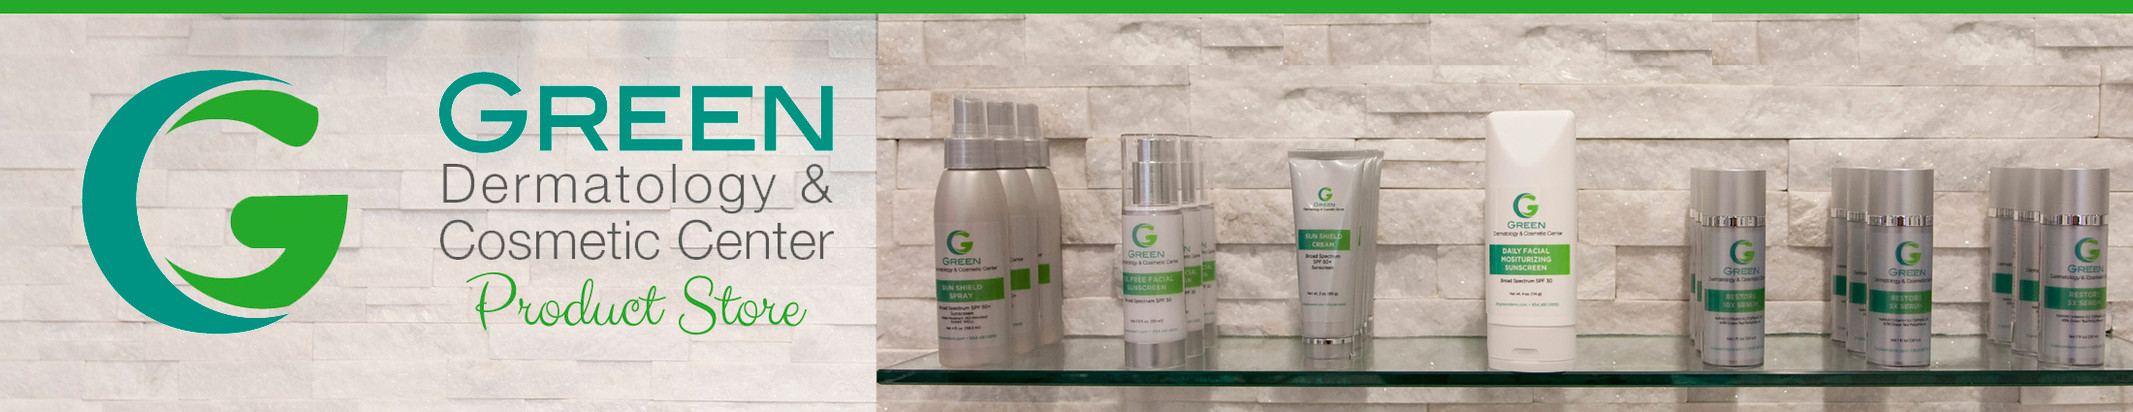 Green Dermatology & Cosmetic Center Product Store